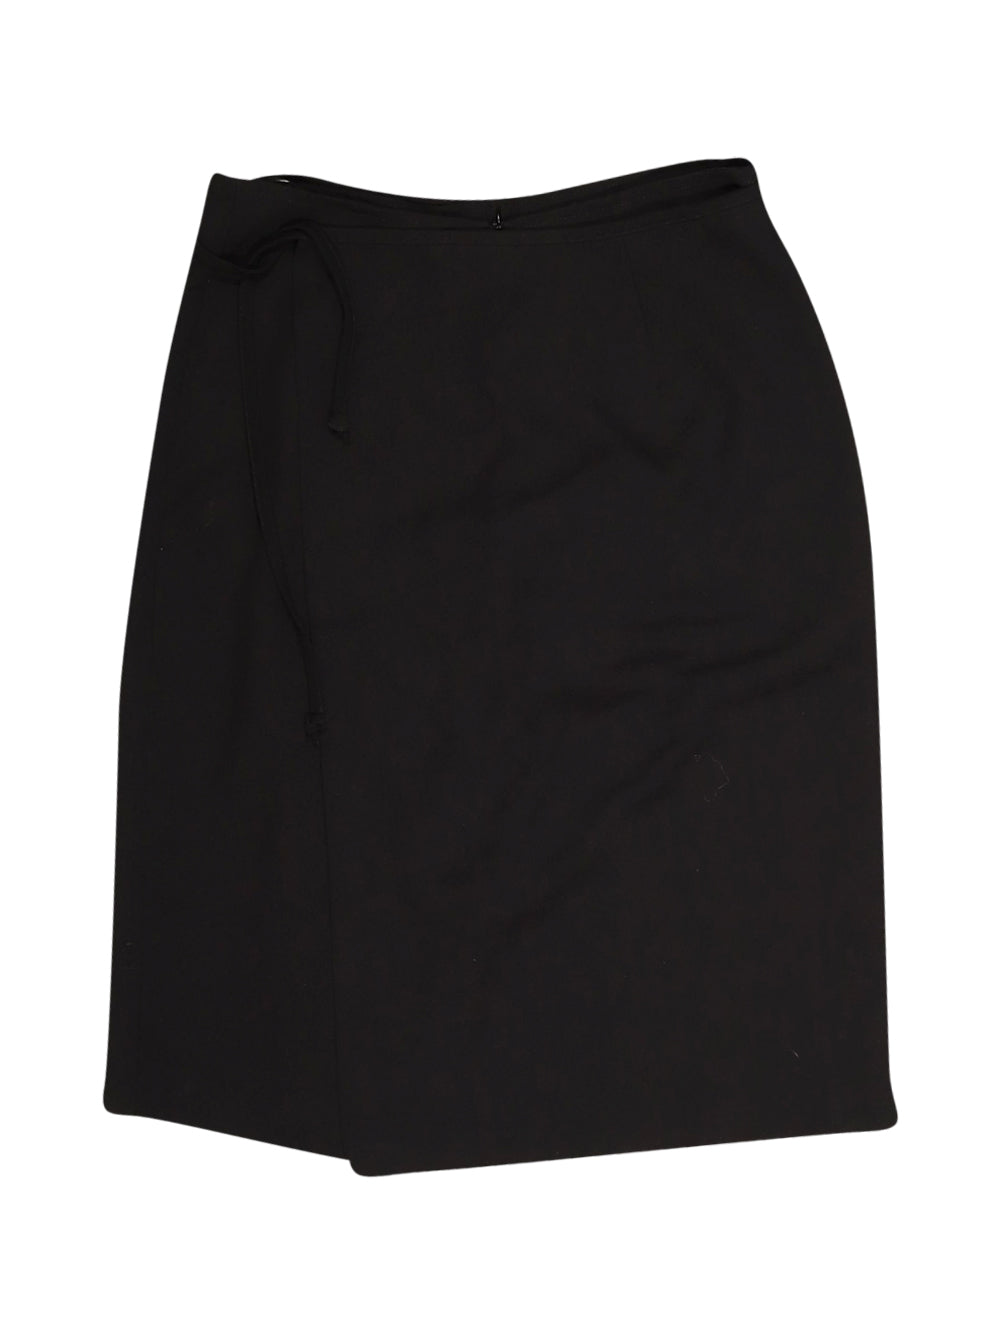 Front photo of Preloved image Black Woman's shorts - size 12/L